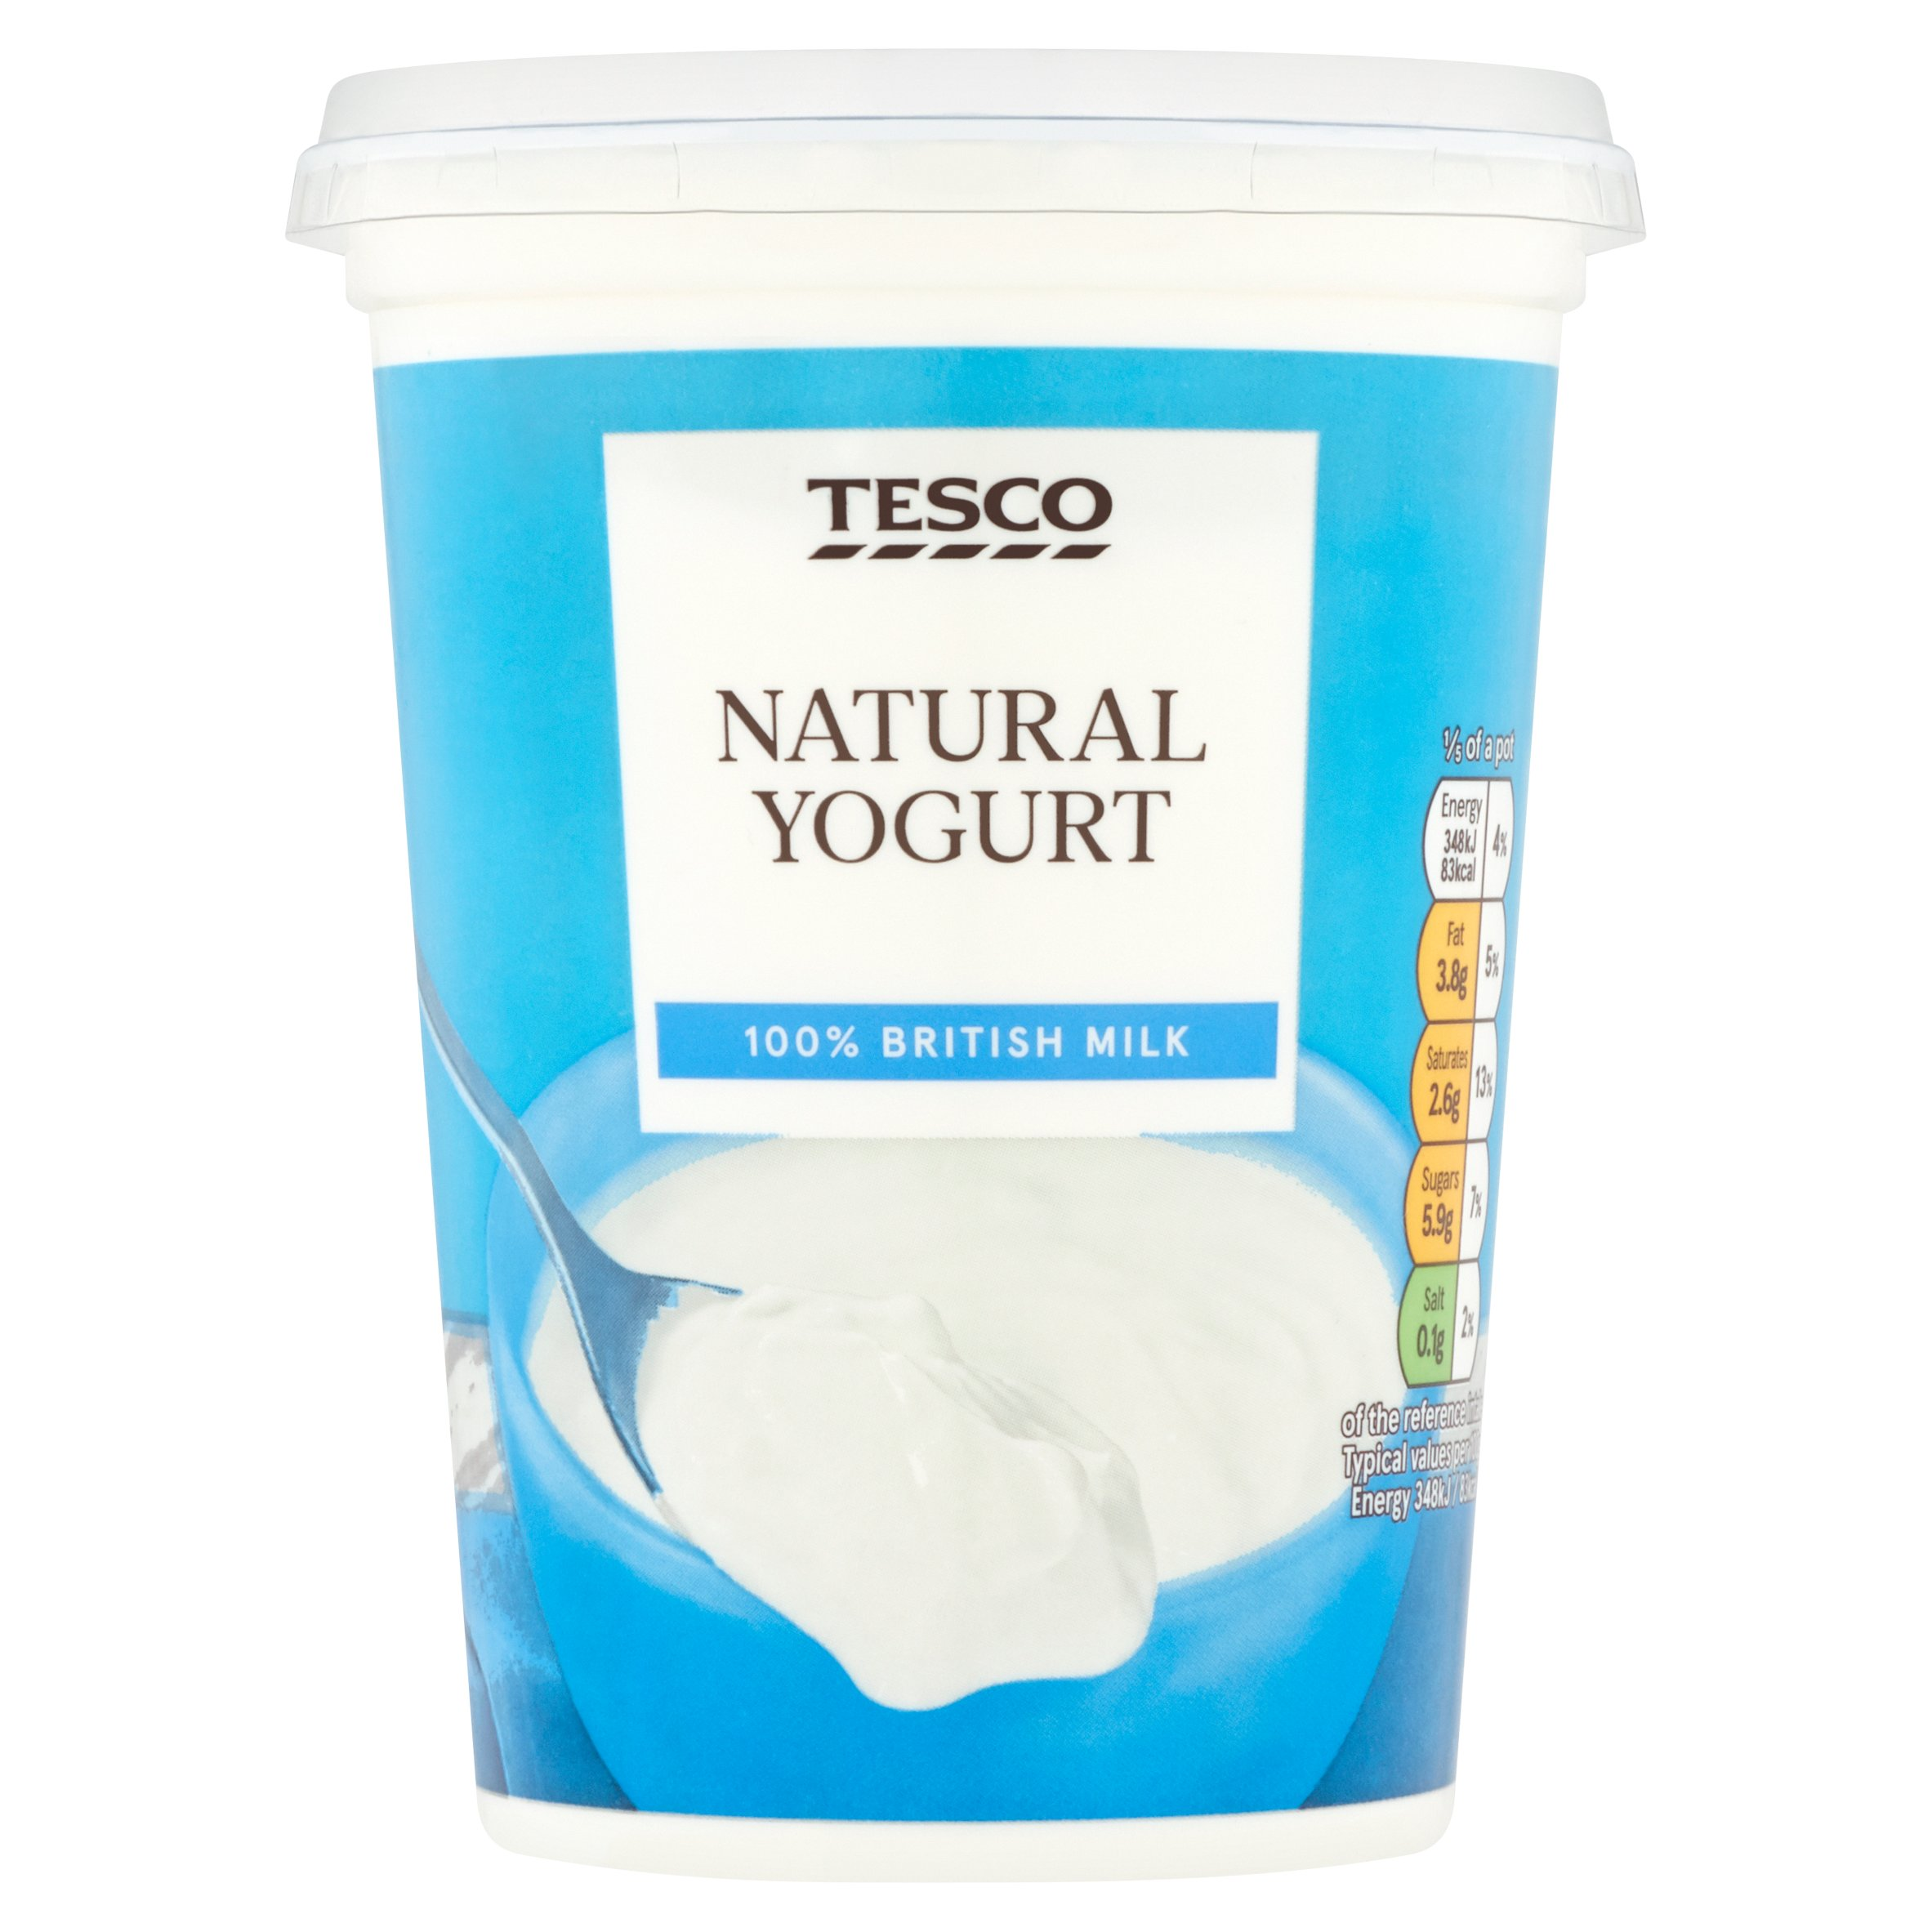 Tesco Natural Yogurt 500G